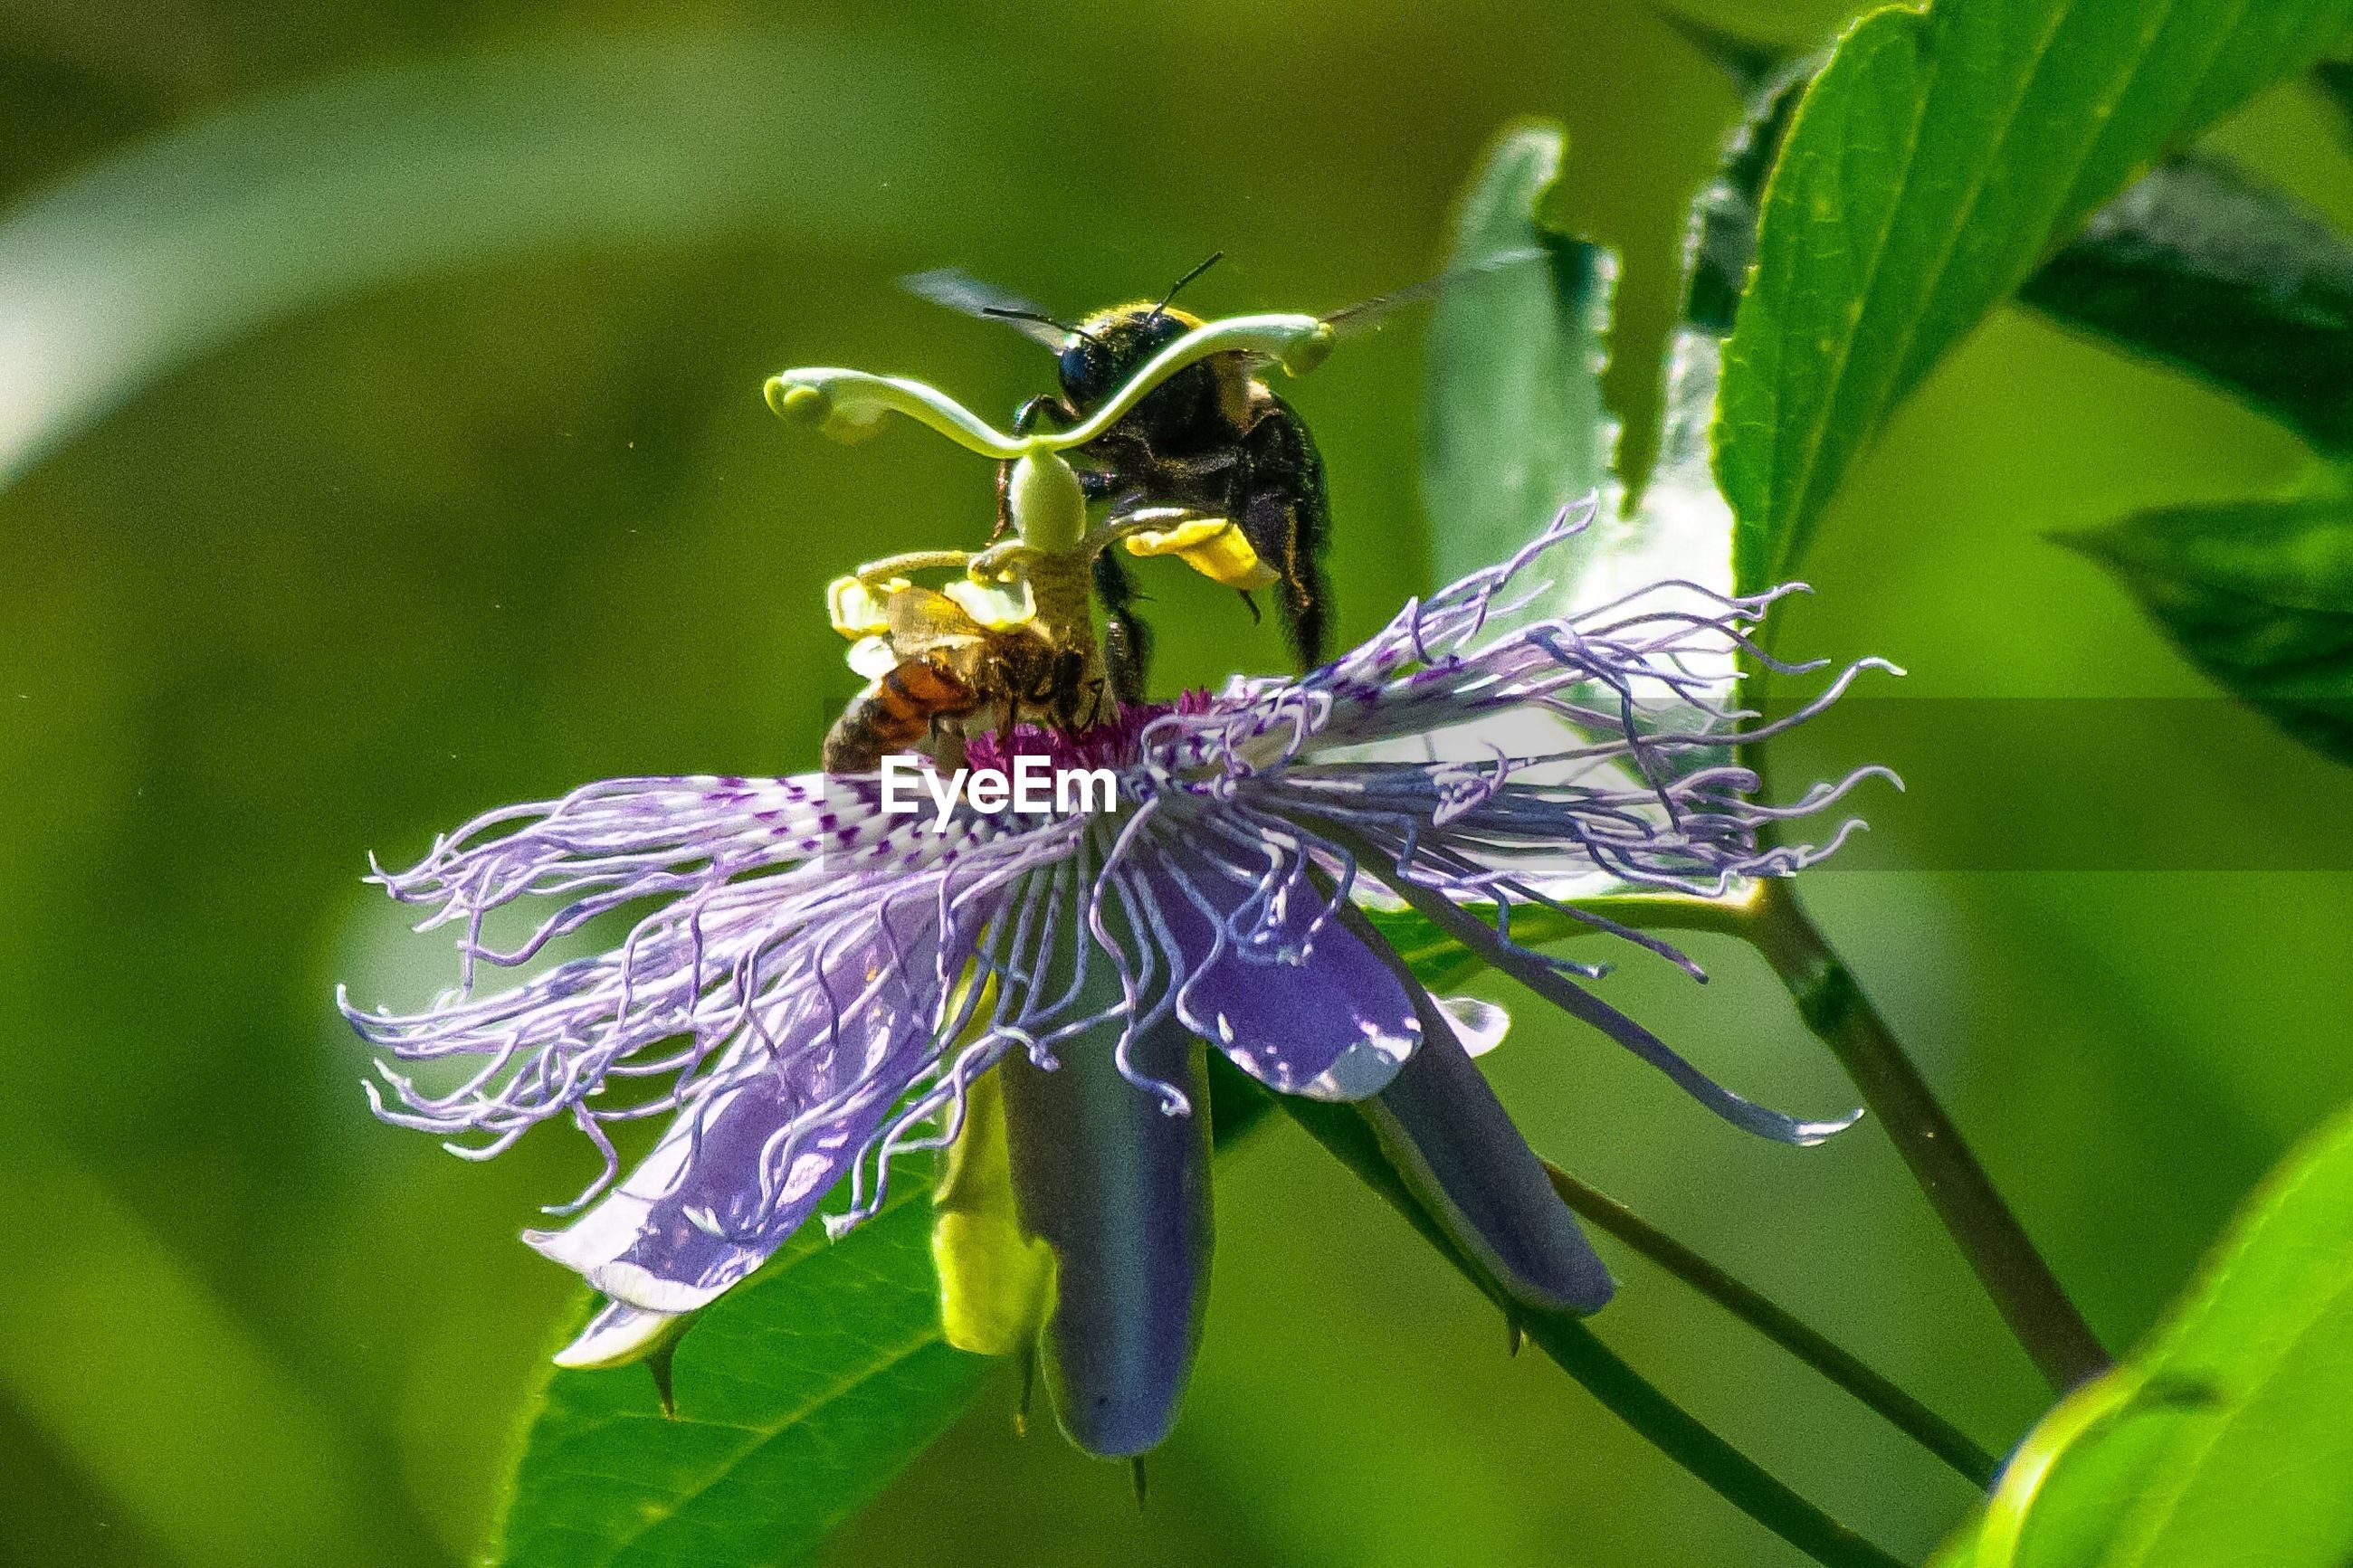 CLOSE-UP OF BUMBLEBEE ON PURPLE FLOWER